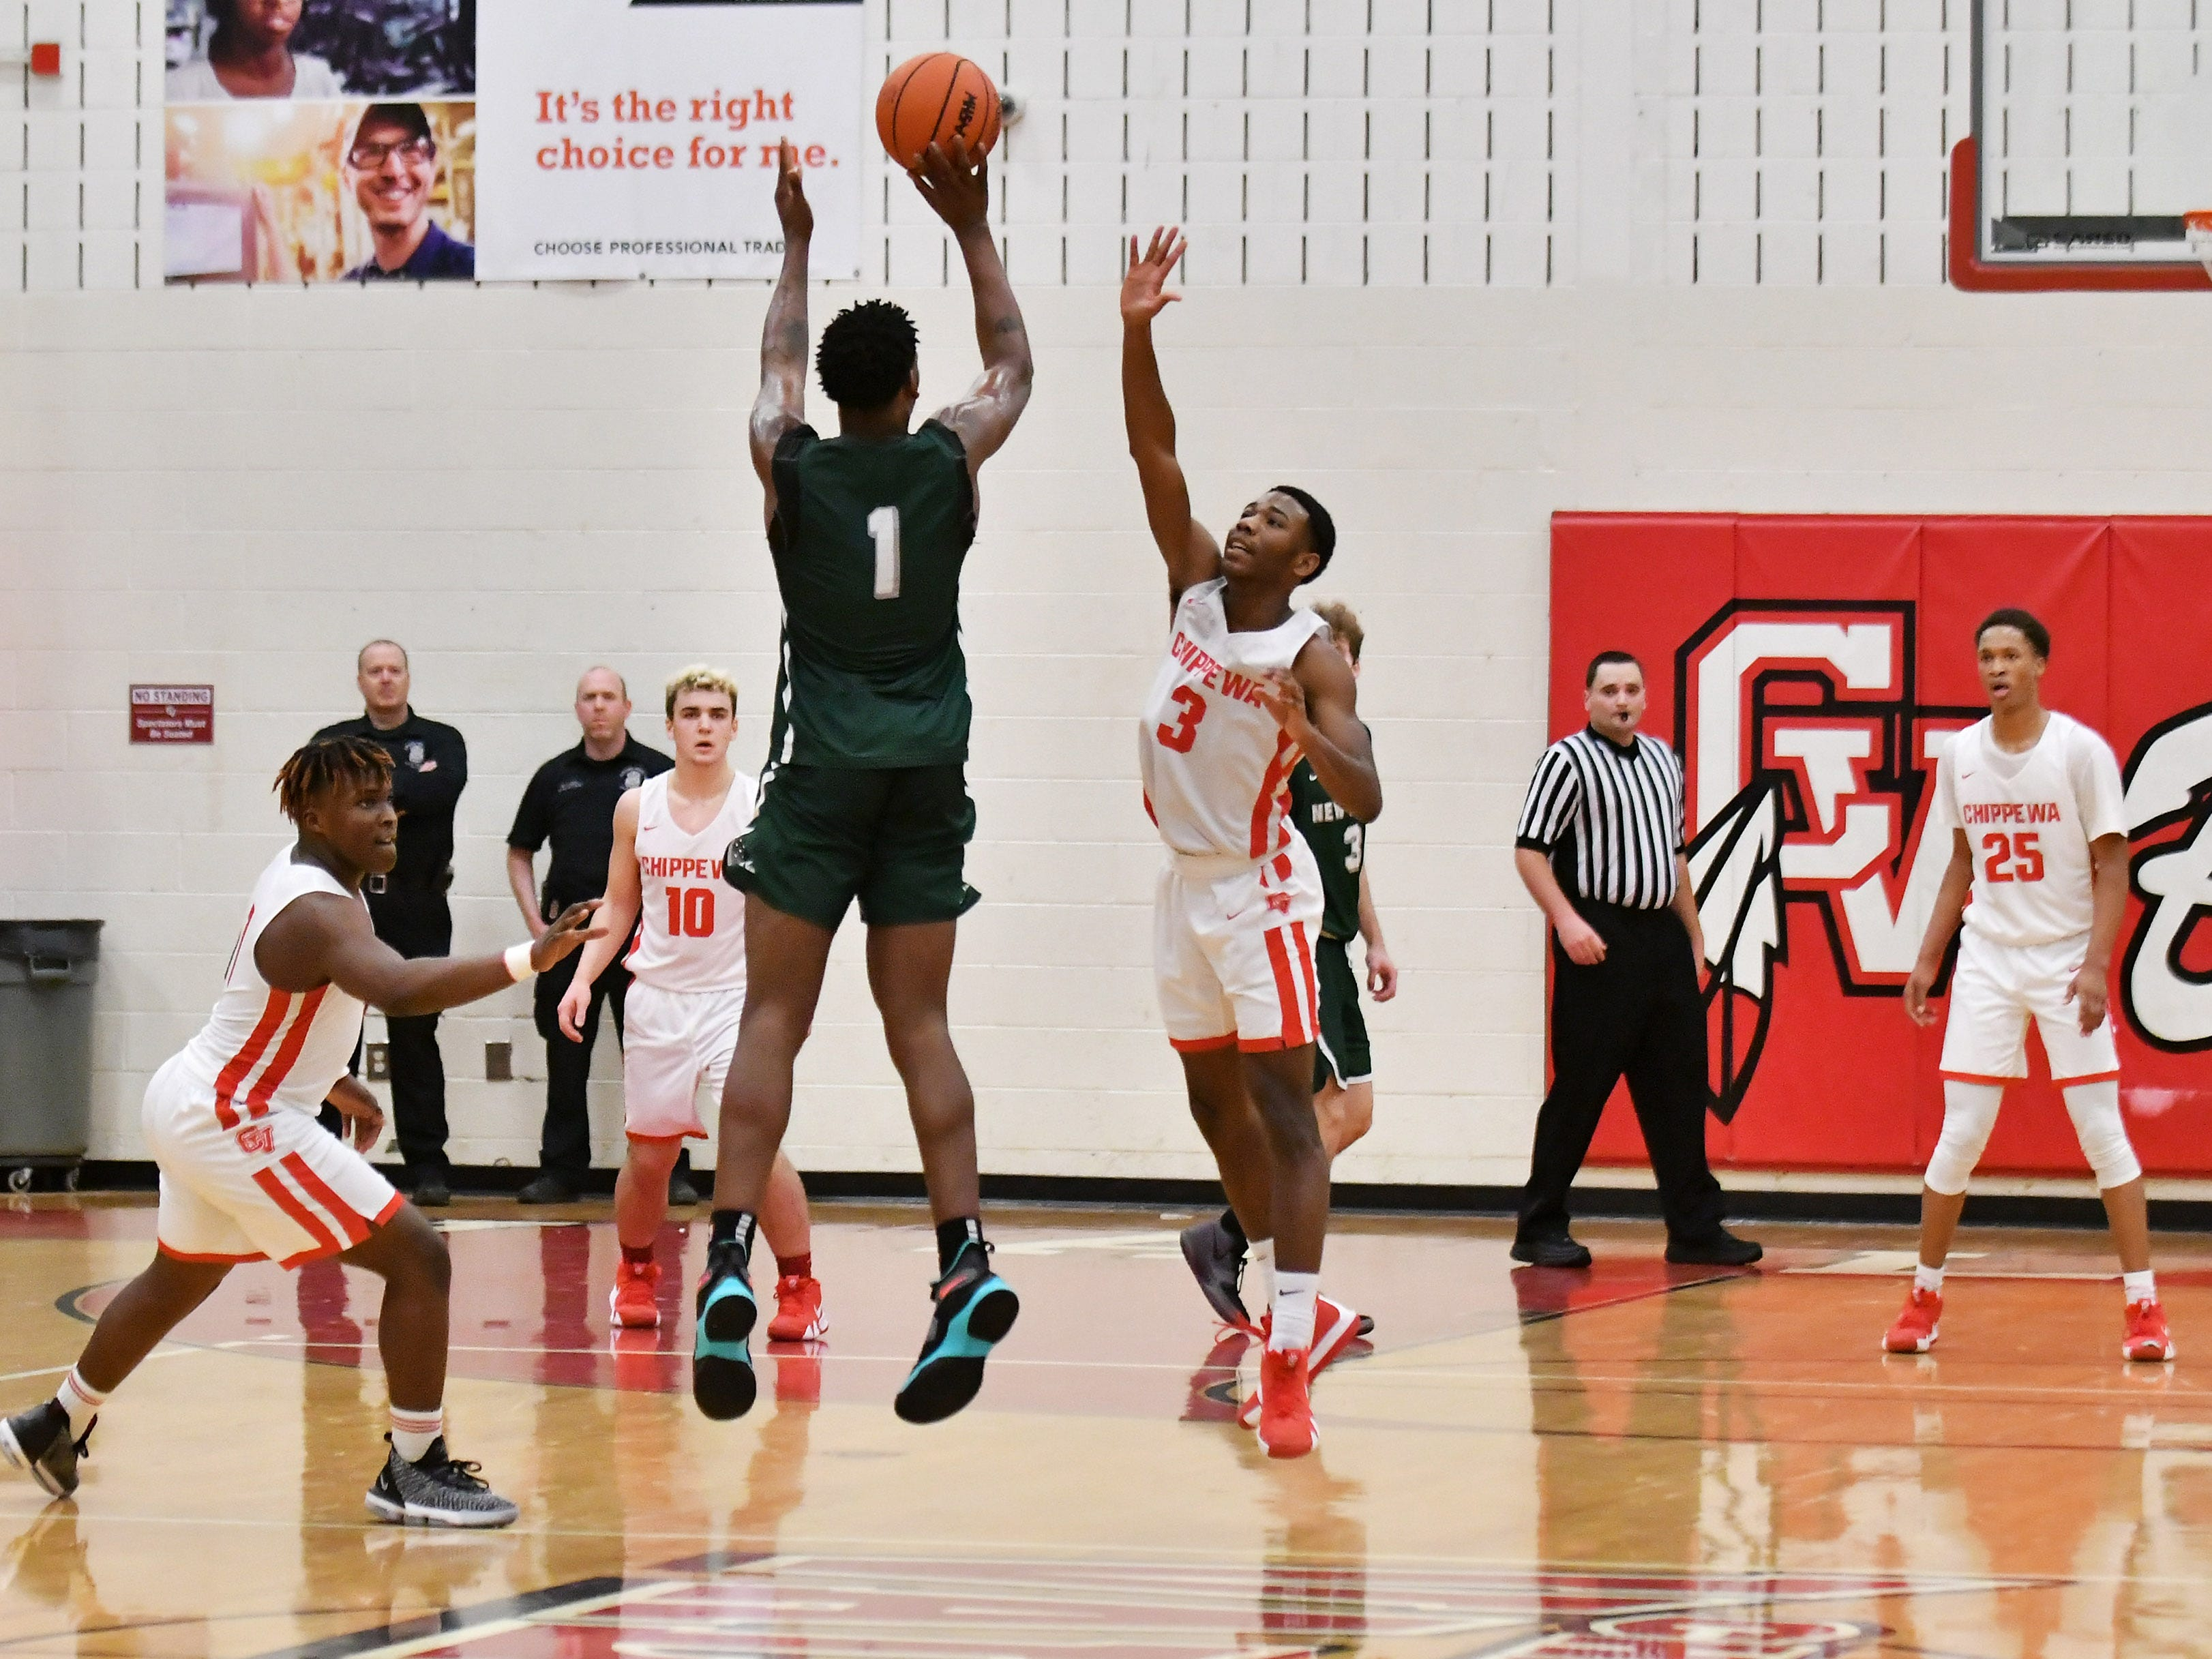 Chippewa Valley's Corey McCray (3) and Myren Harris, left, defend a shot by New Haven's Romeo Weems in the second half.